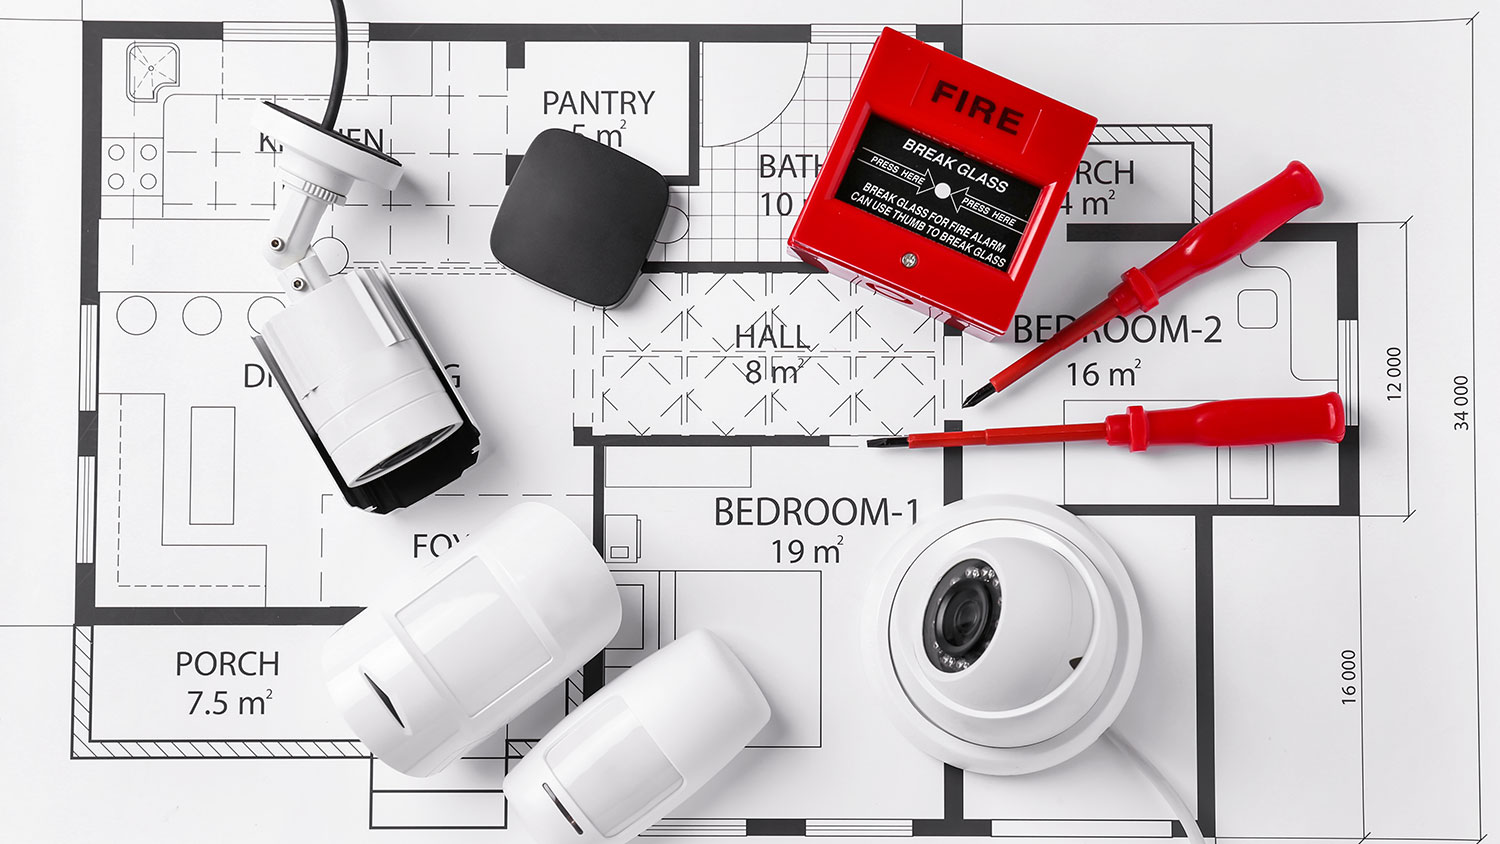 4 FIRE SAFETY MEASURES TO IMPLEMENT AT HOME